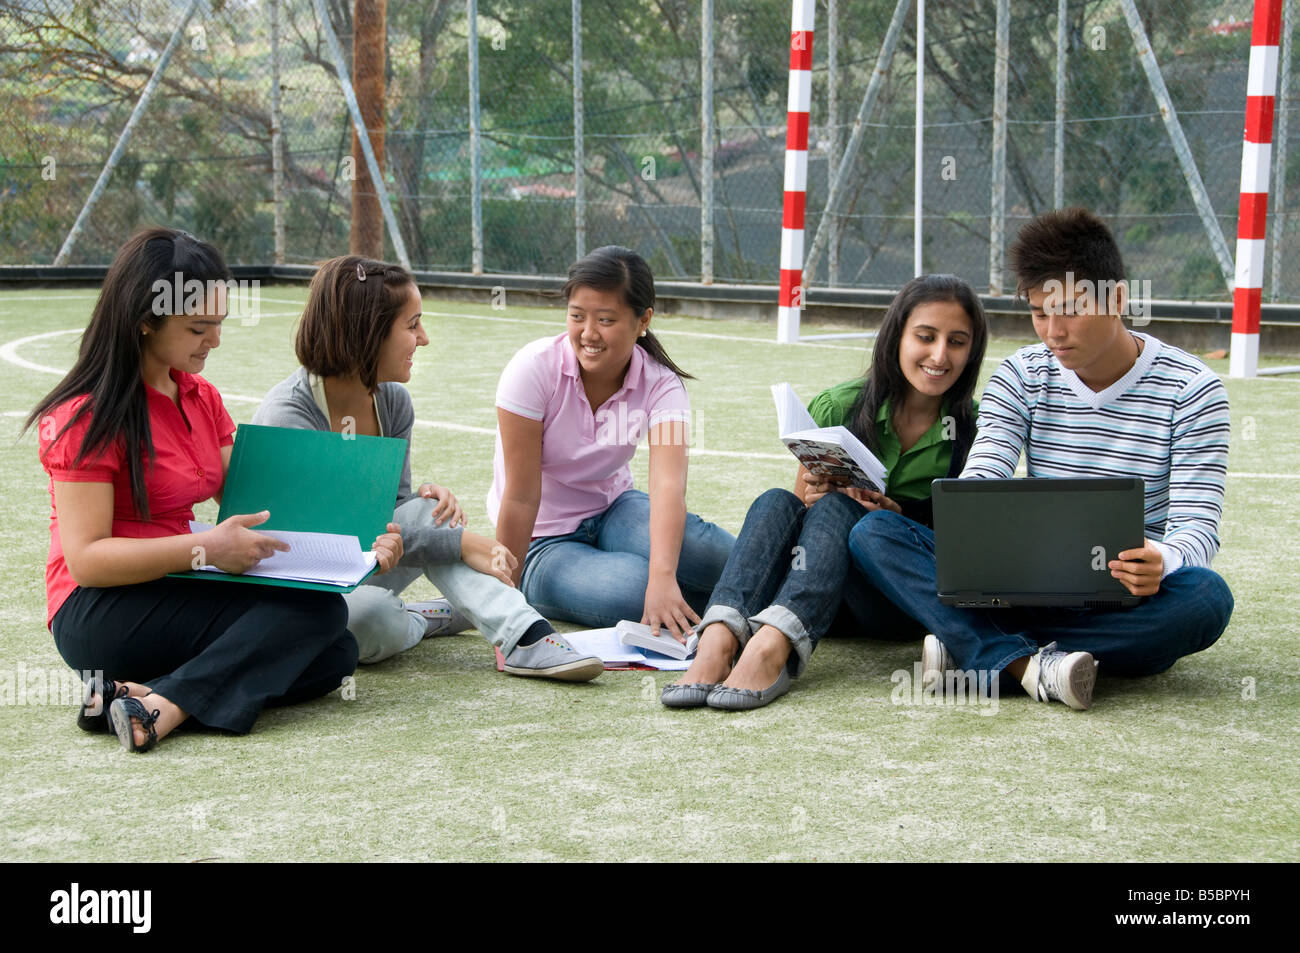 Group of senior teenage school students relax and talk together in an informal study break outside on school campus - Stock Image